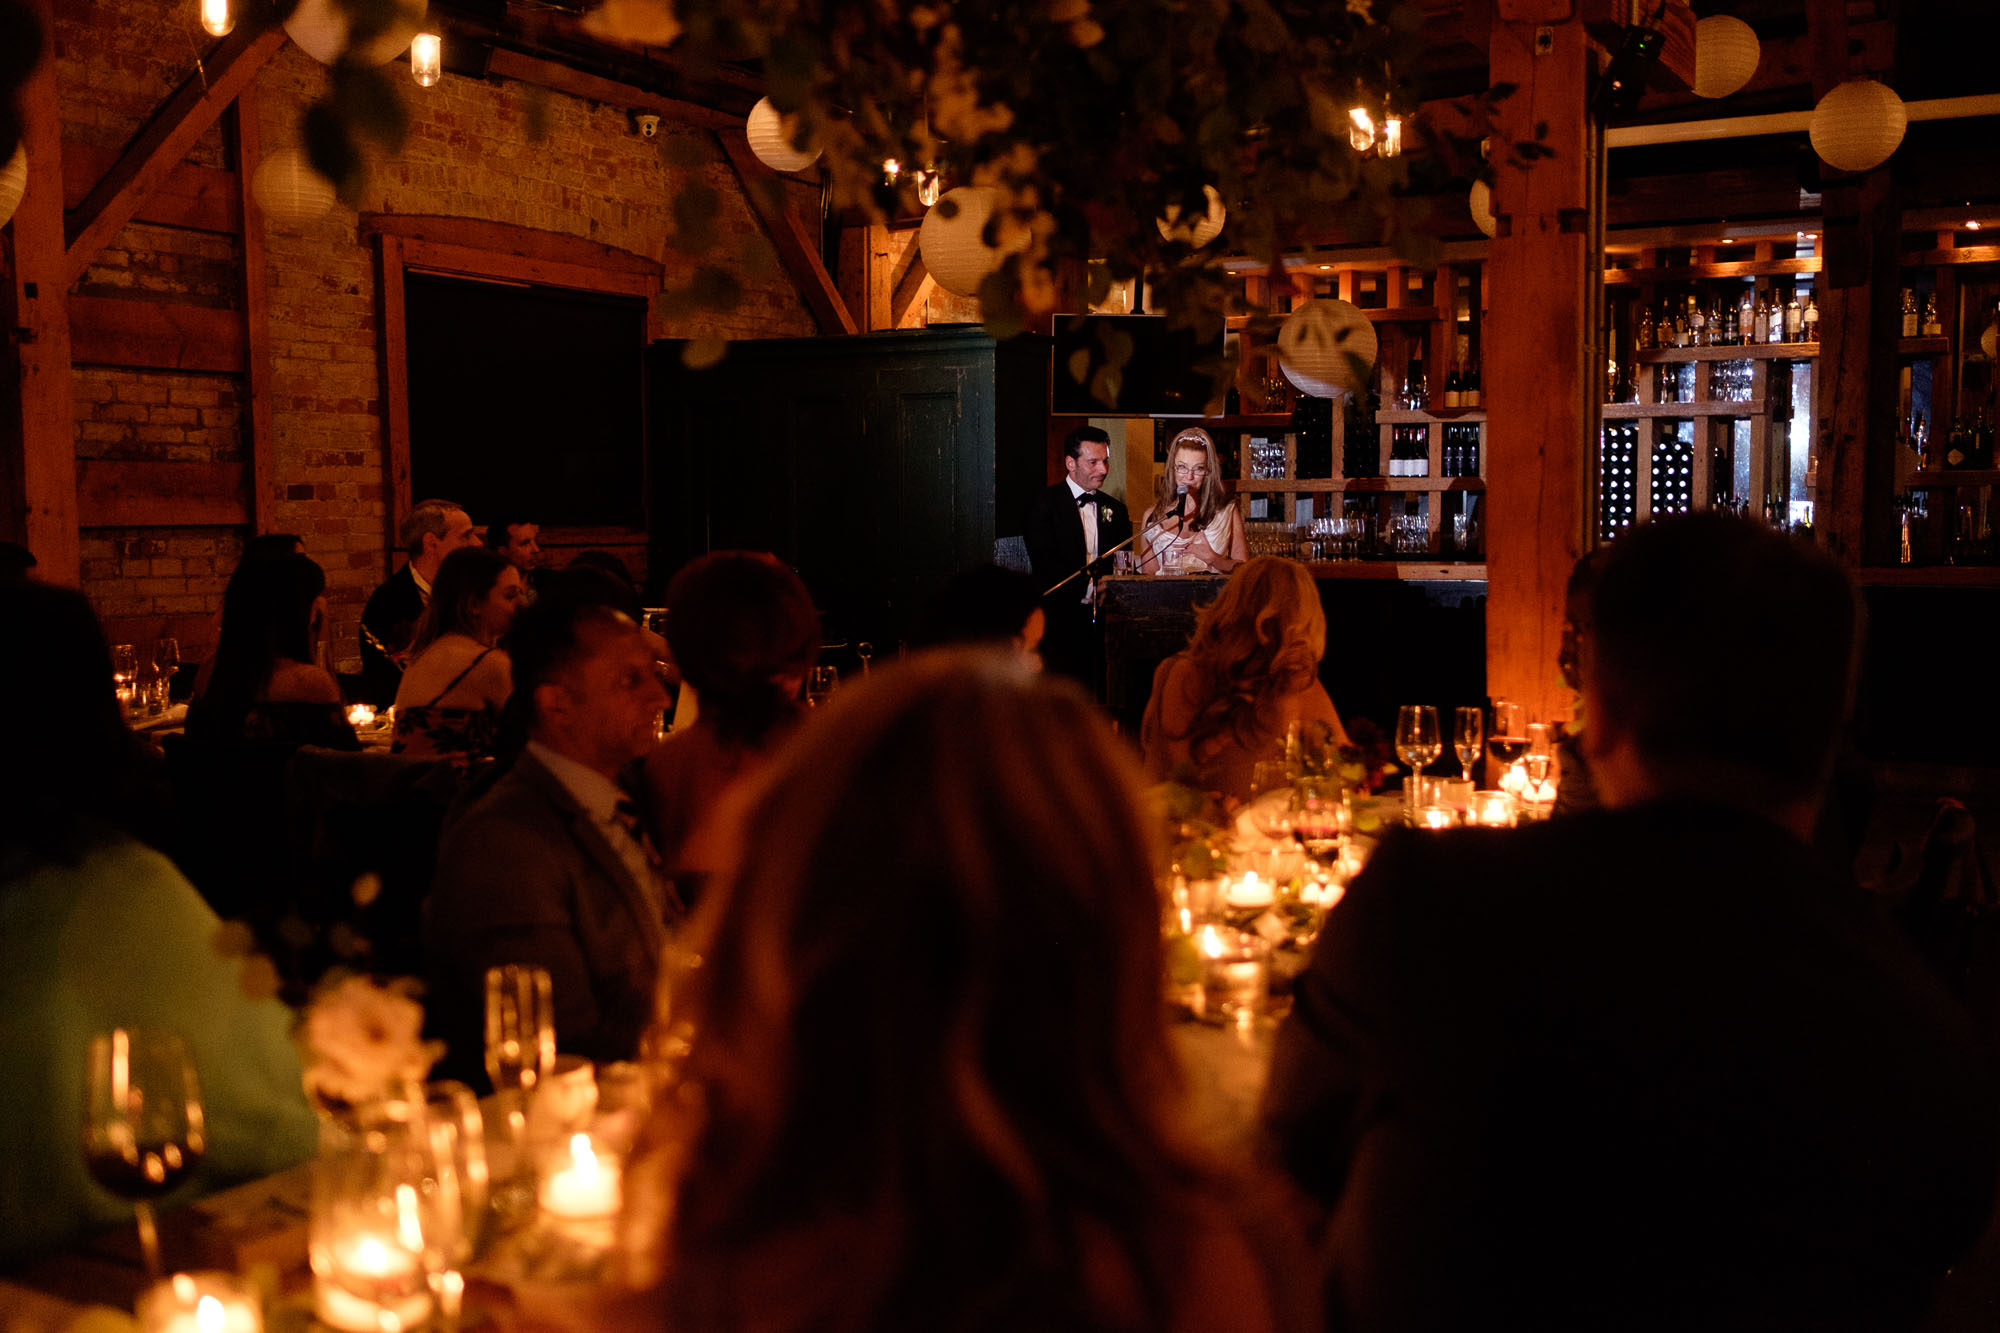 Cindy + Enrico toasts their guests during their wedding reception at the Archeo restaurant in Toronto.